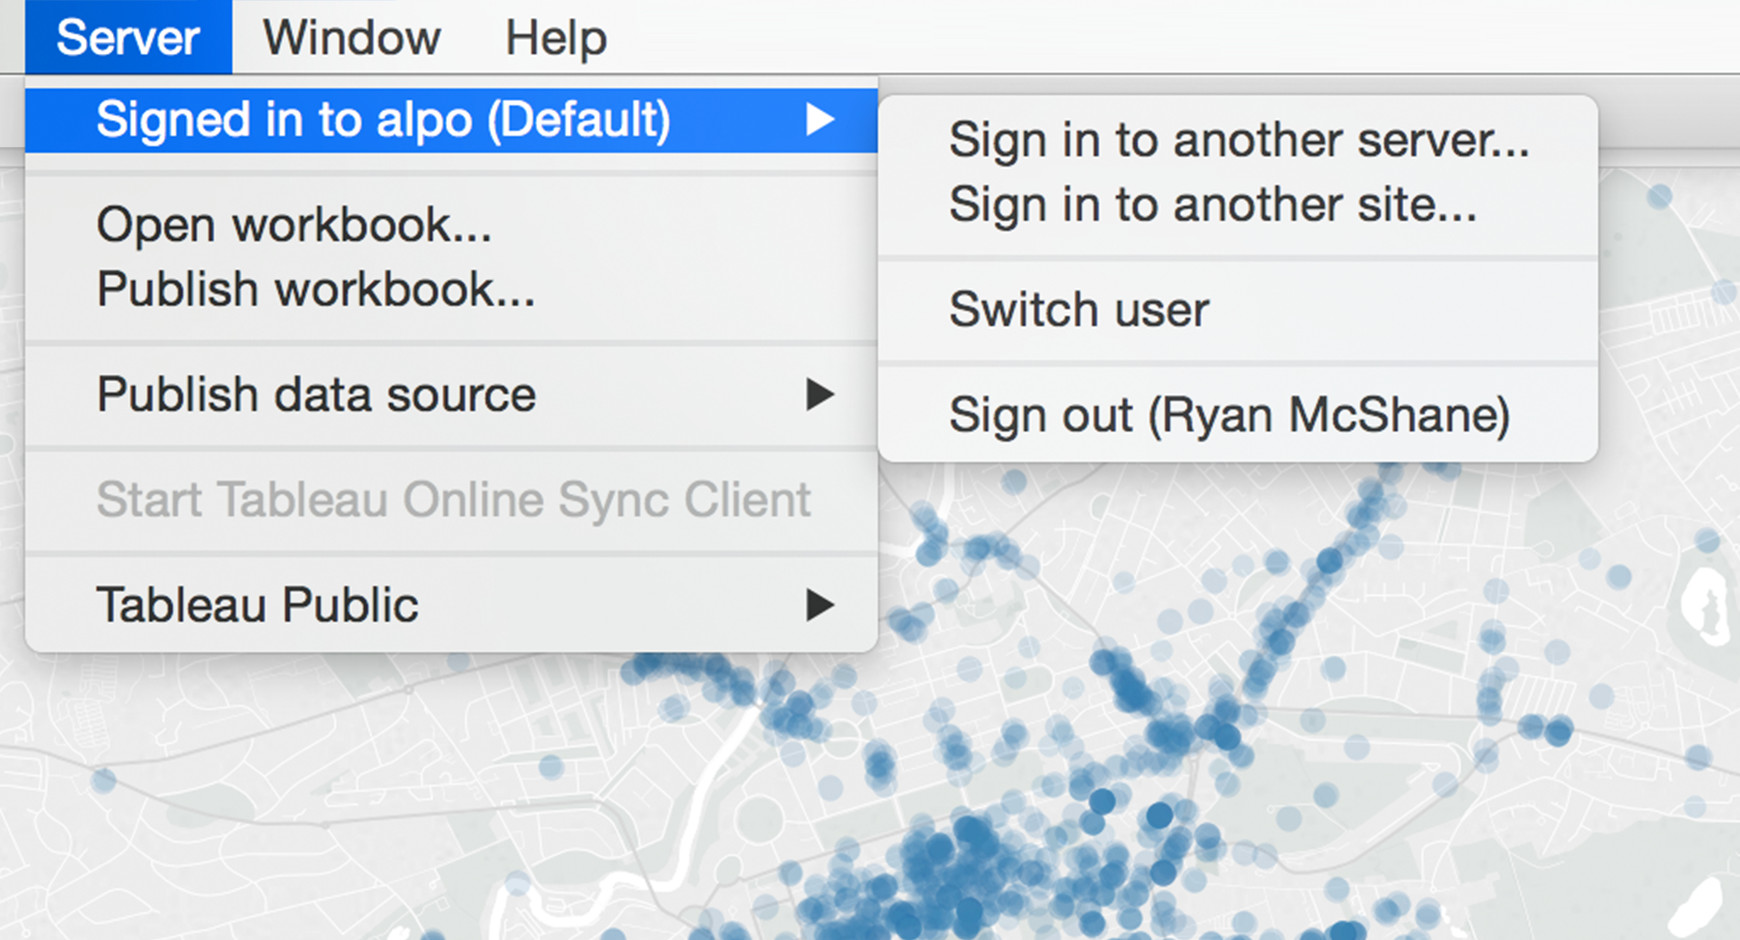 Workbooks skippers ticket workbook : Stay connected with auto sign-in in Tableau 9.3 | Tableau Software